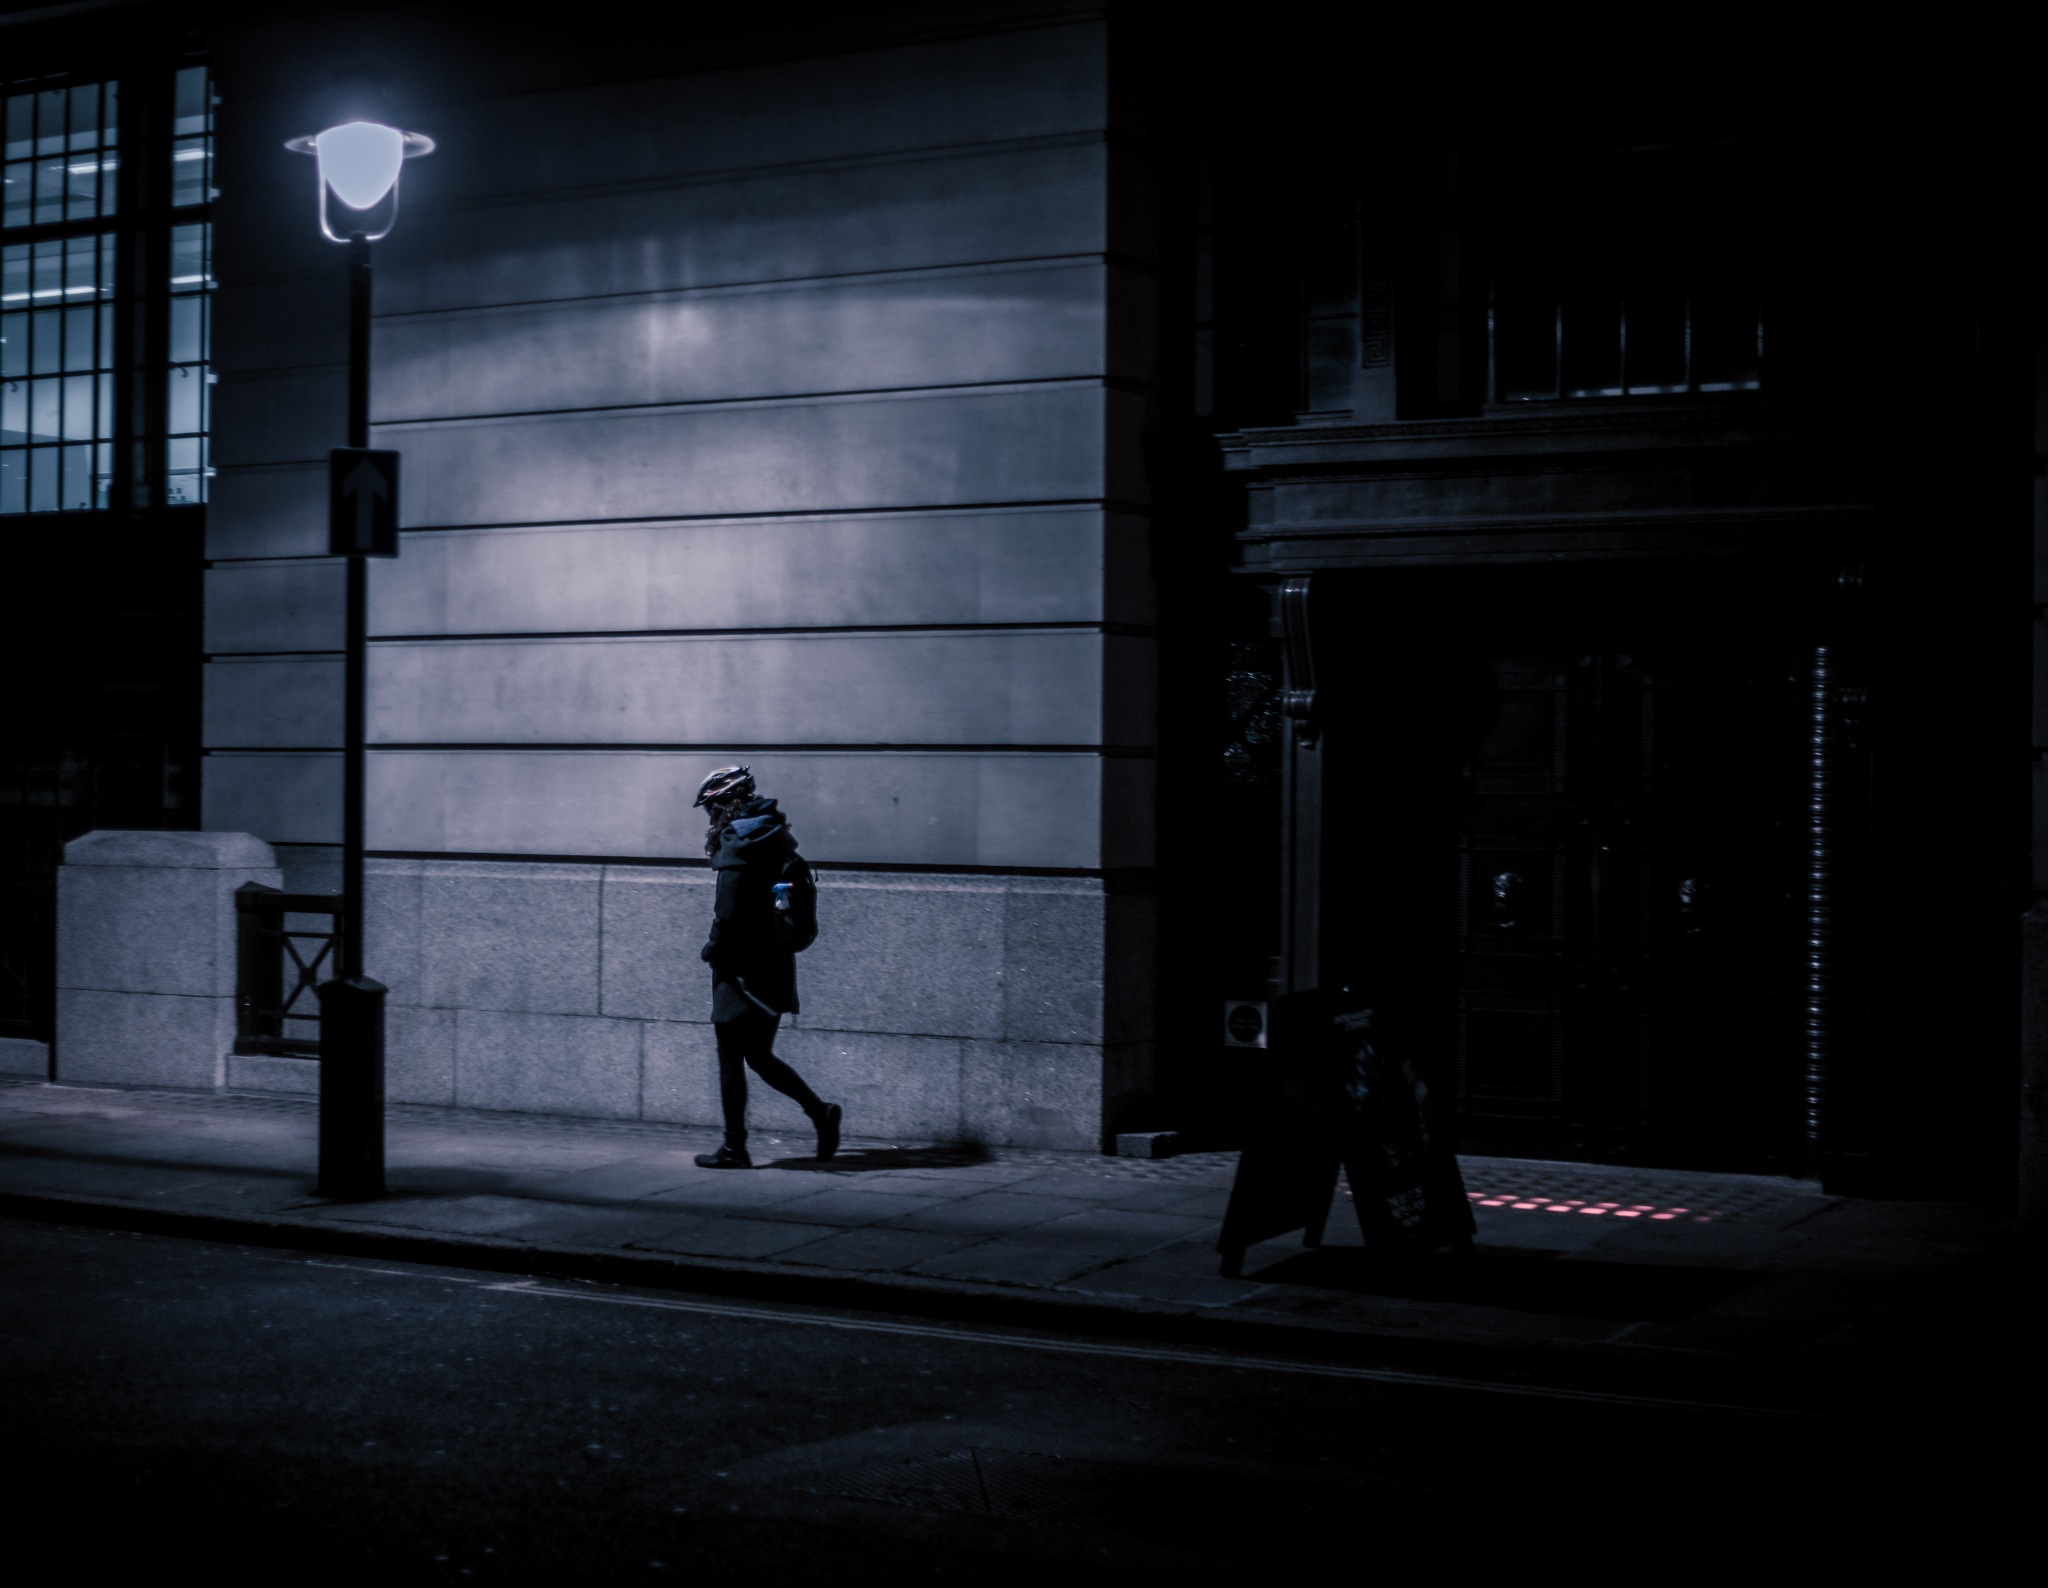 London after dark by edozollo